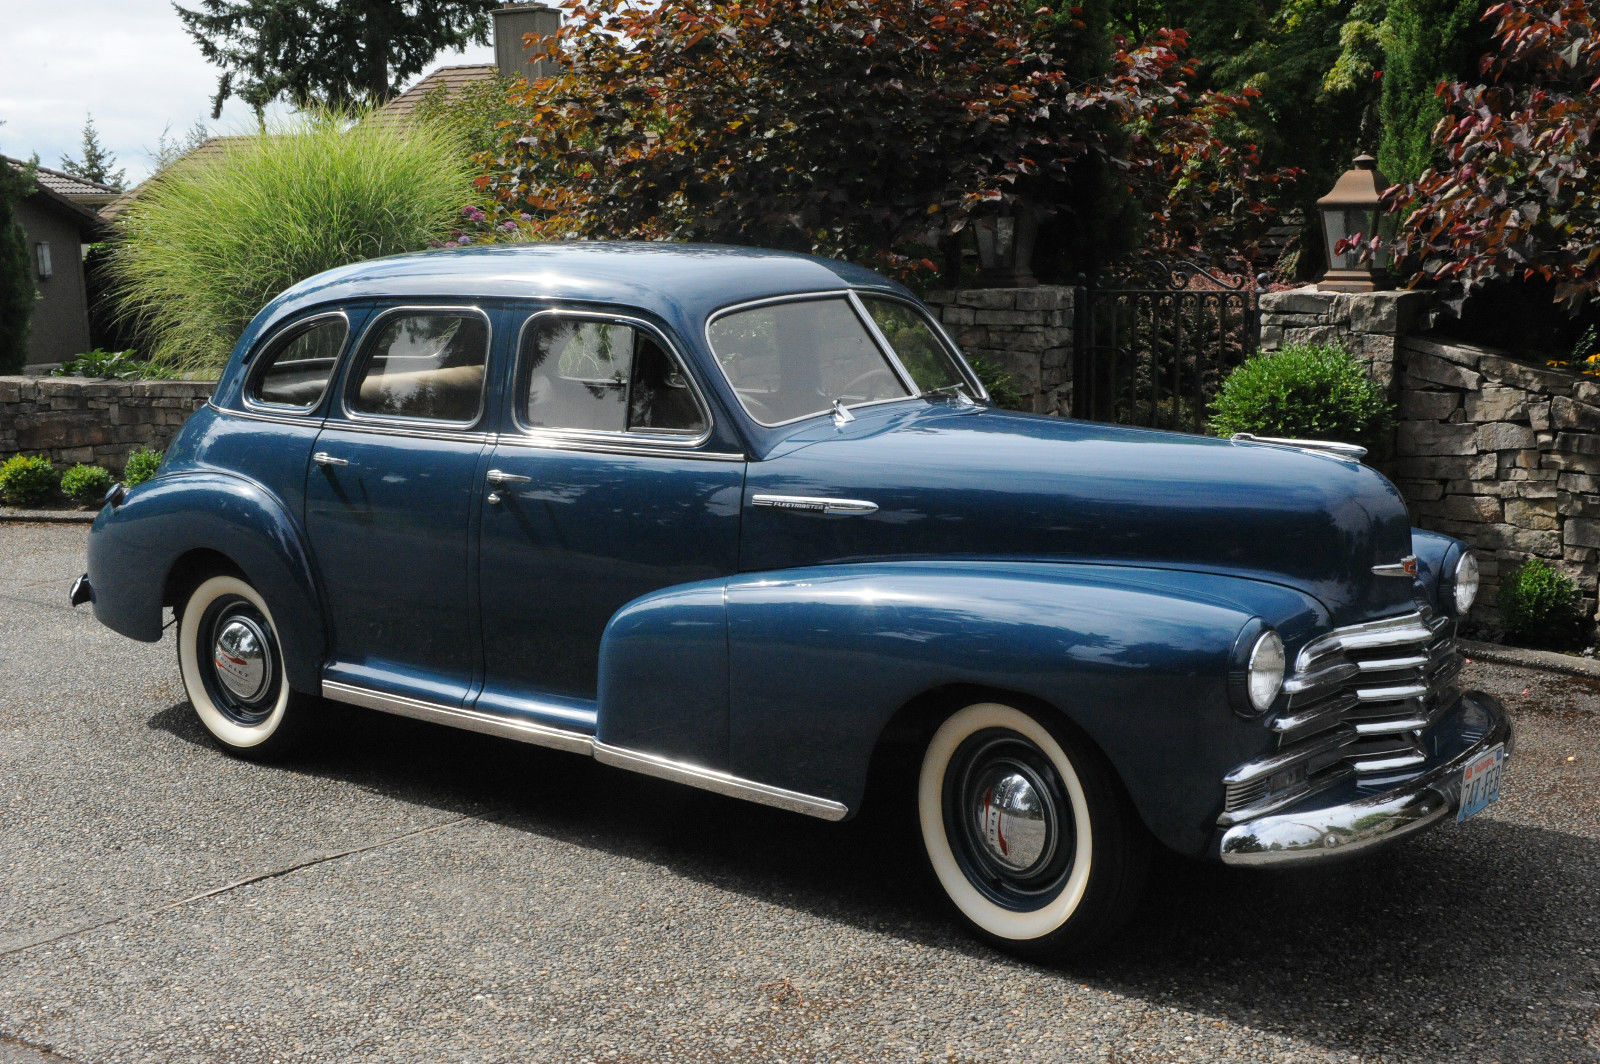 1947 chevrolet chevy fleetmaster 4 door deluxe sport sedan classic chevrolet other 1947 for sale. Black Bedroom Furniture Sets. Home Design Ideas